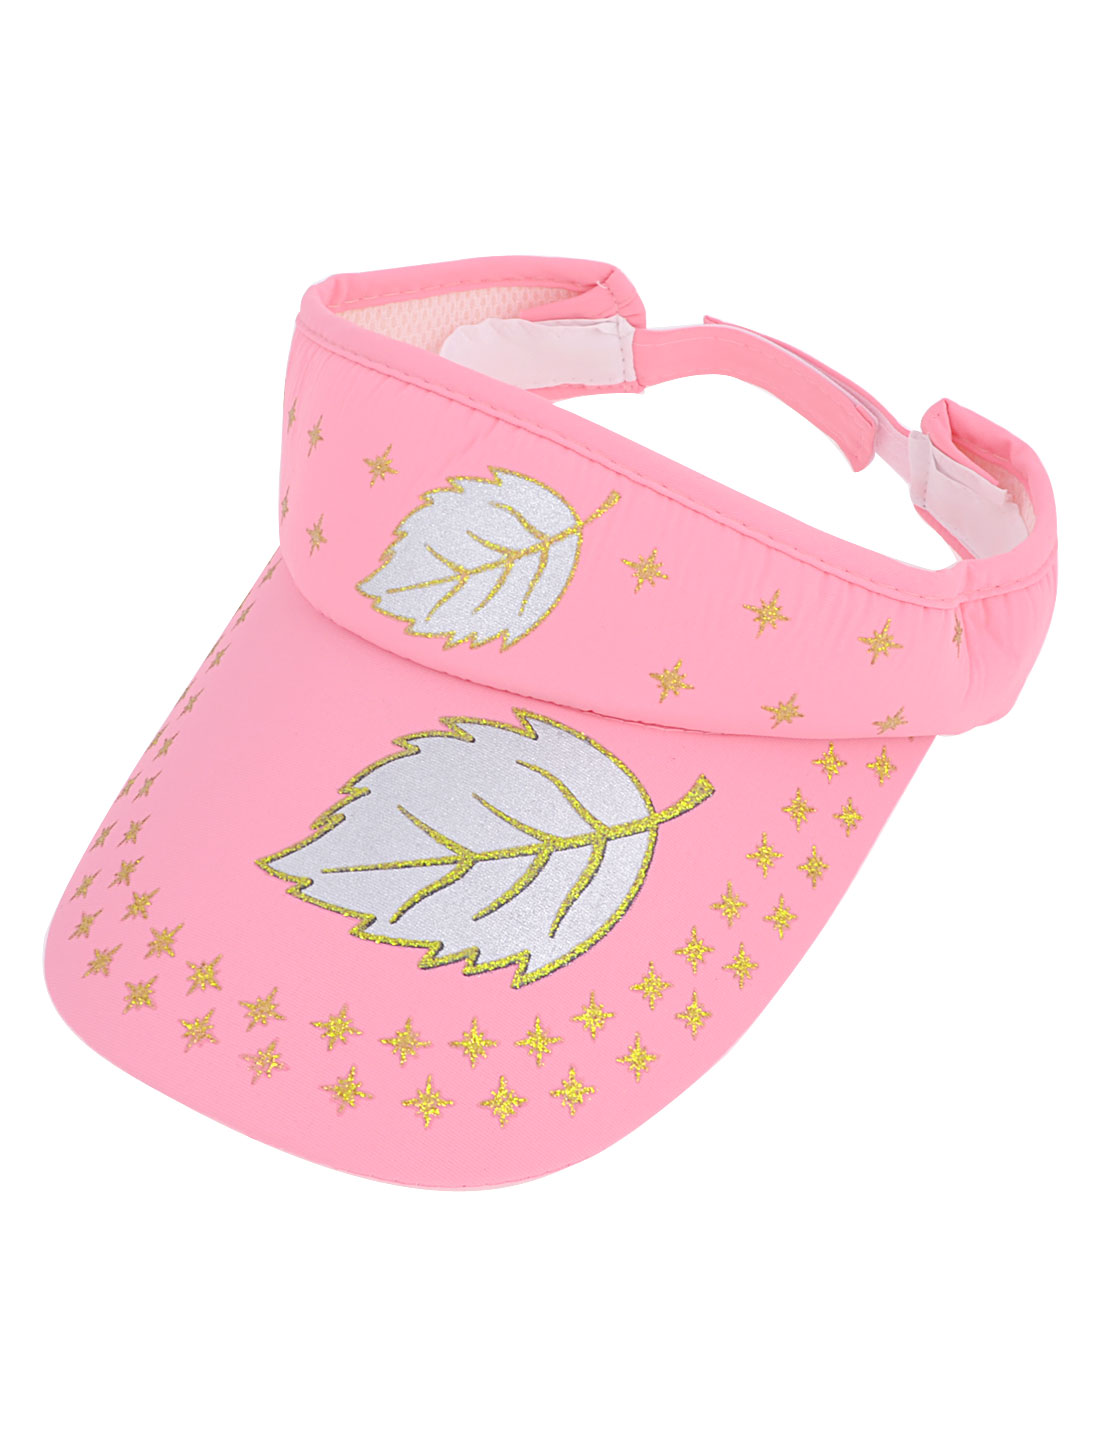 Outdoor Camping Leaves Printed Adjustable Open Top Sun Visor Cap for Lady